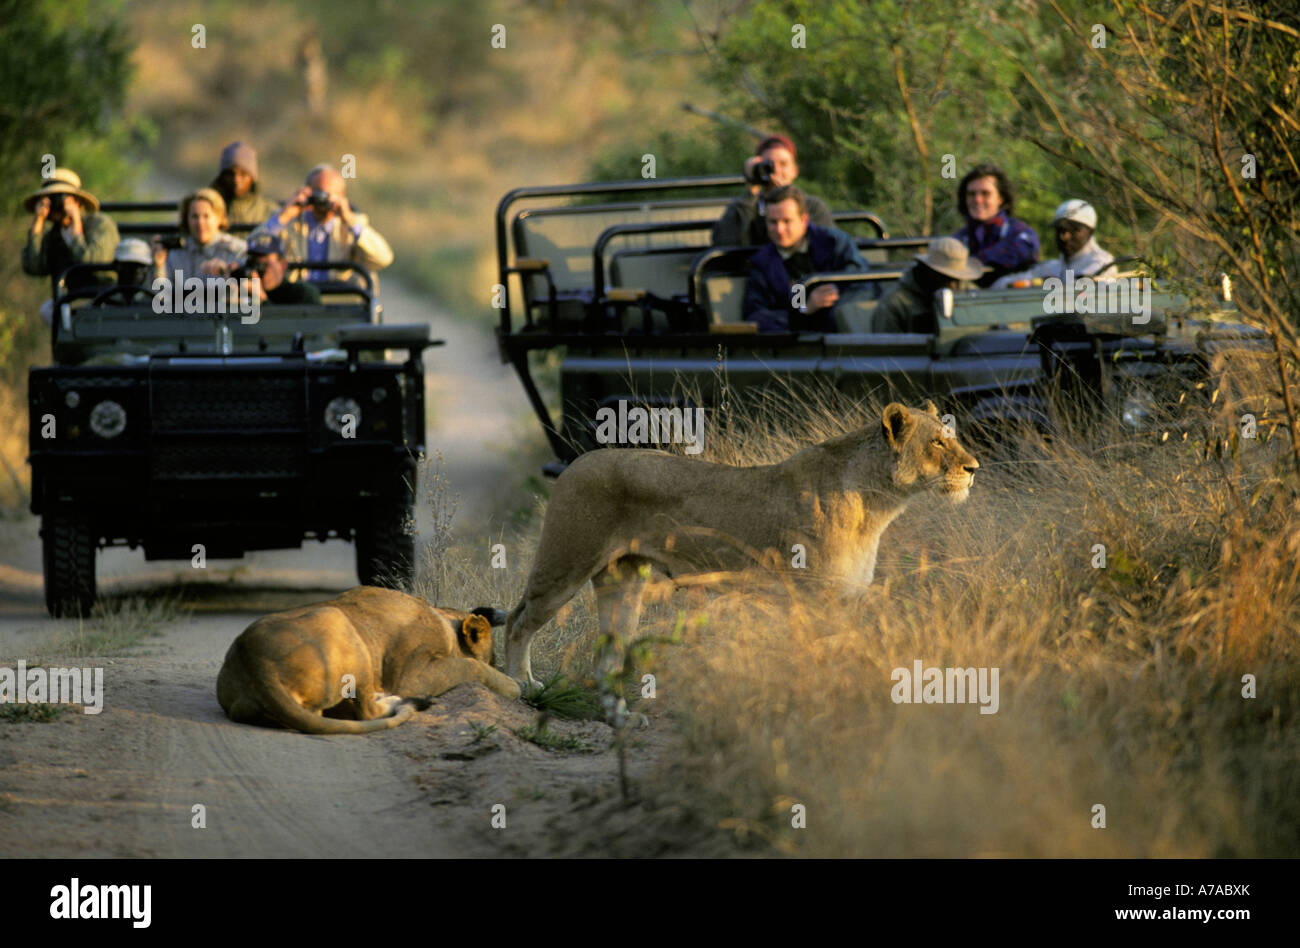 Tourists in two open game viewing vehicles viewing two lionesses